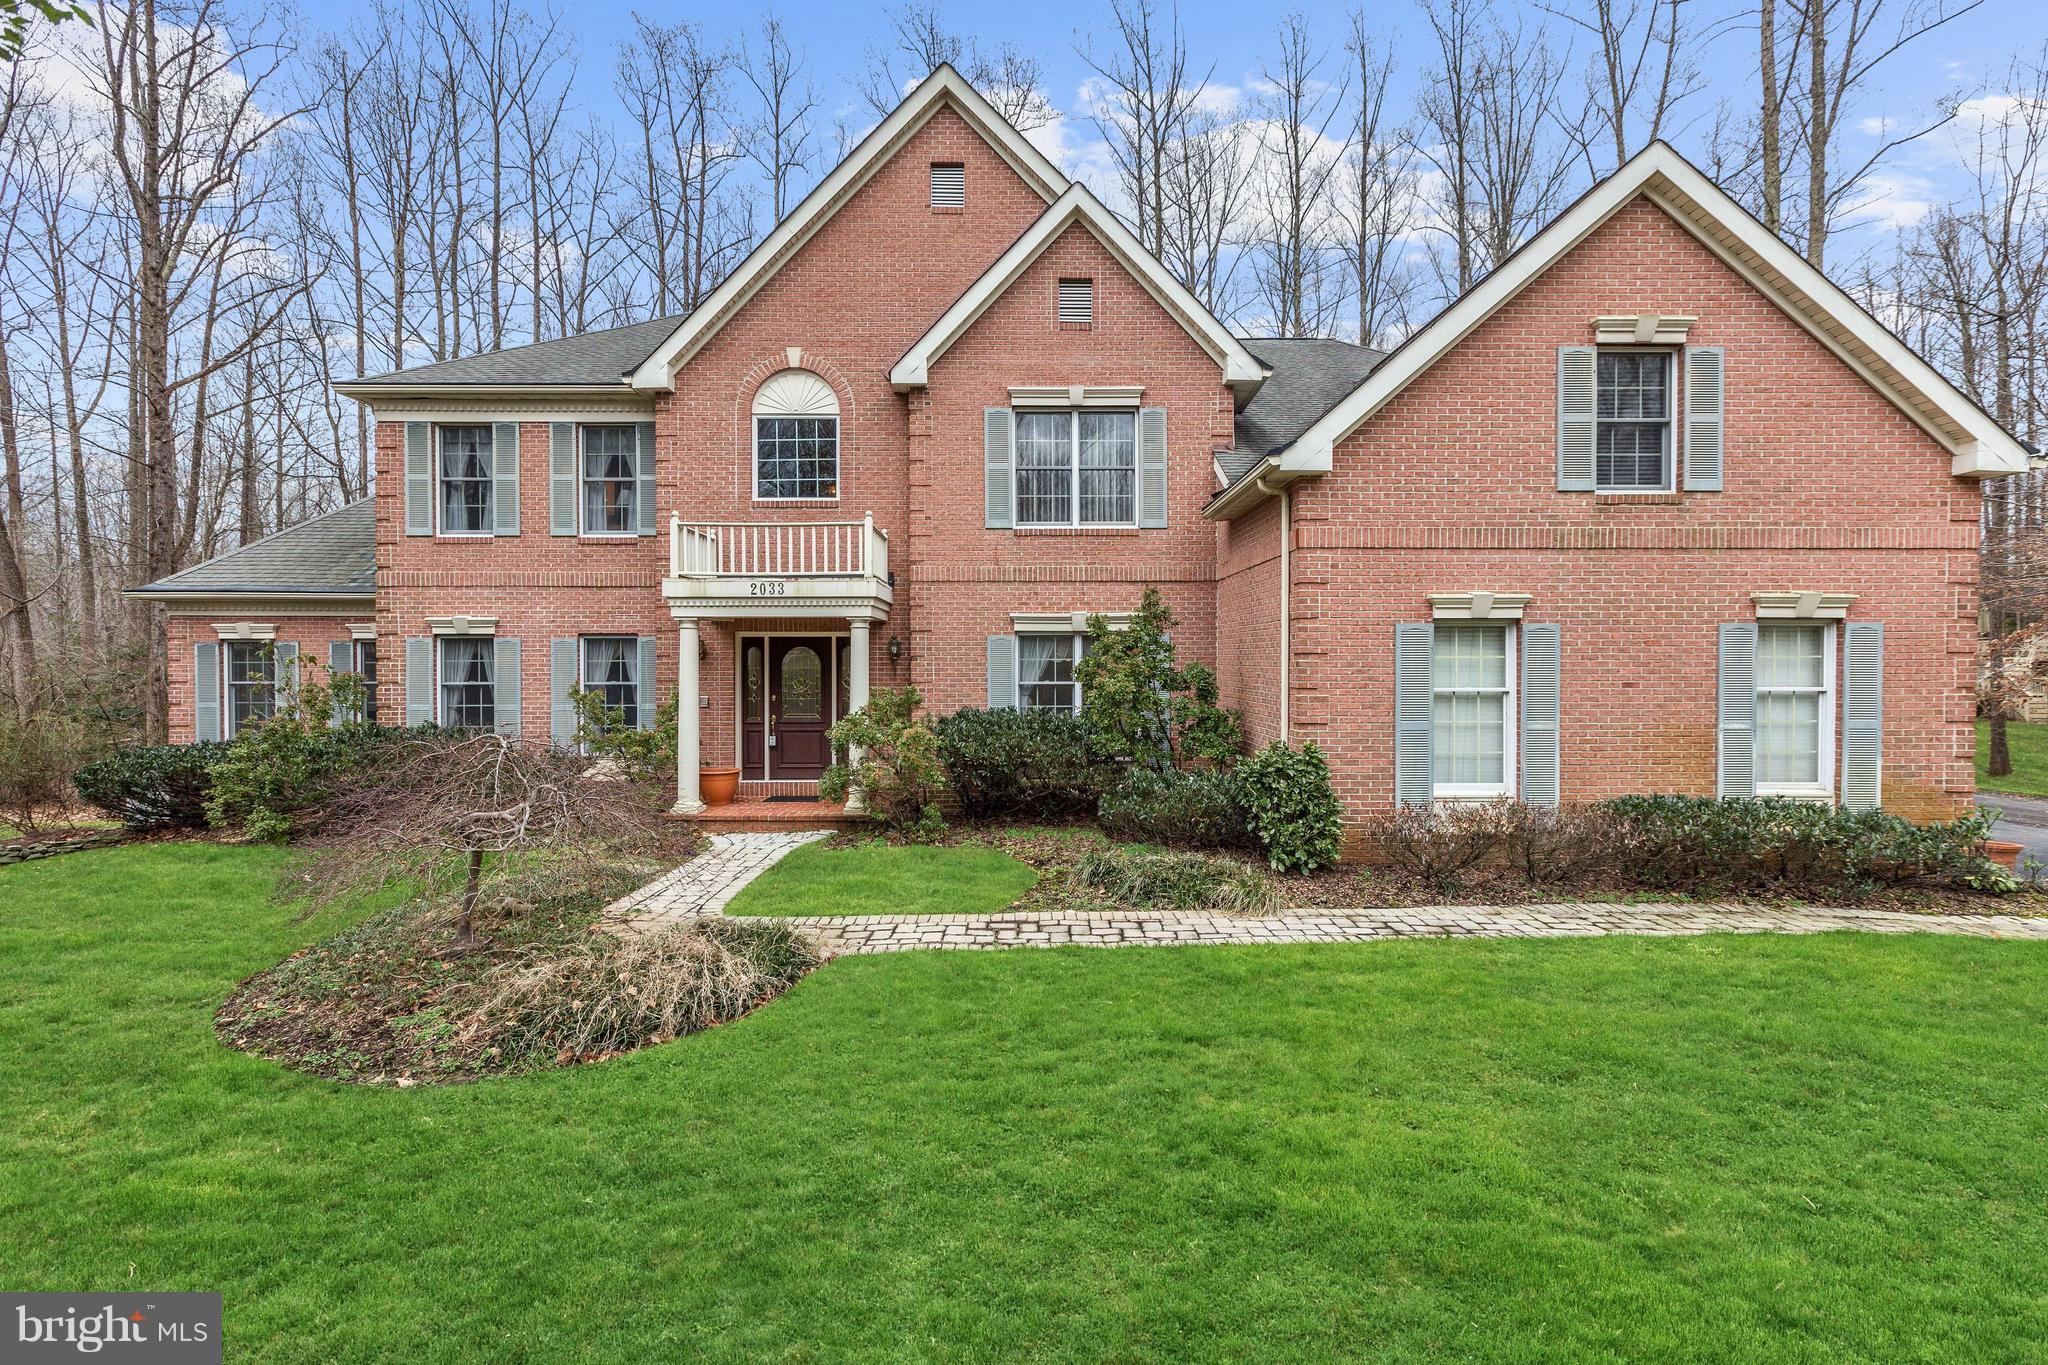 2033 HAVERFORD DRIVE, CROWNSVILLE, MD 21032